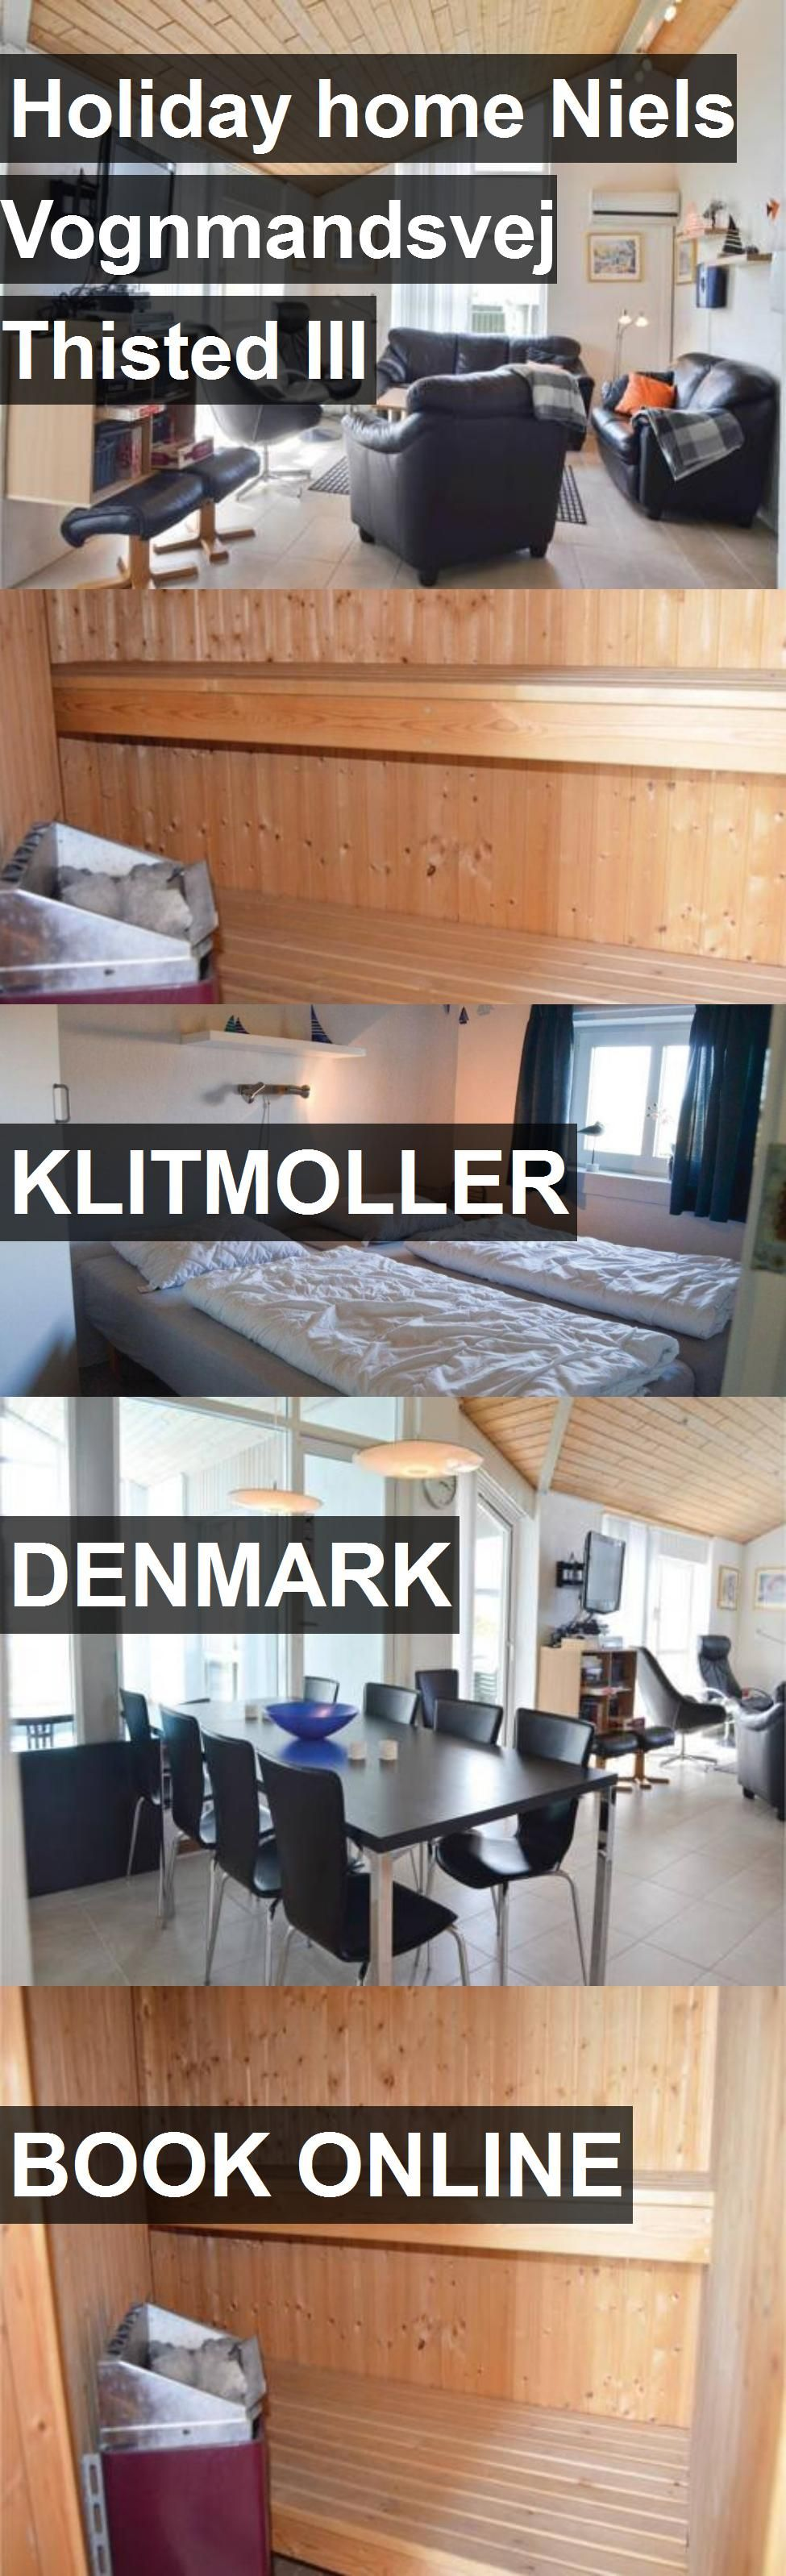 Hotel Holiday home Niels Vognmandsvej Thisted III in Klitmoller, Denmark. For more information, photos, reviews and best prices please follow the link. #Denmark #Klitmoller #HolidayhomeNielsVognmandsvejThistedIII #hotel #travel #vacation